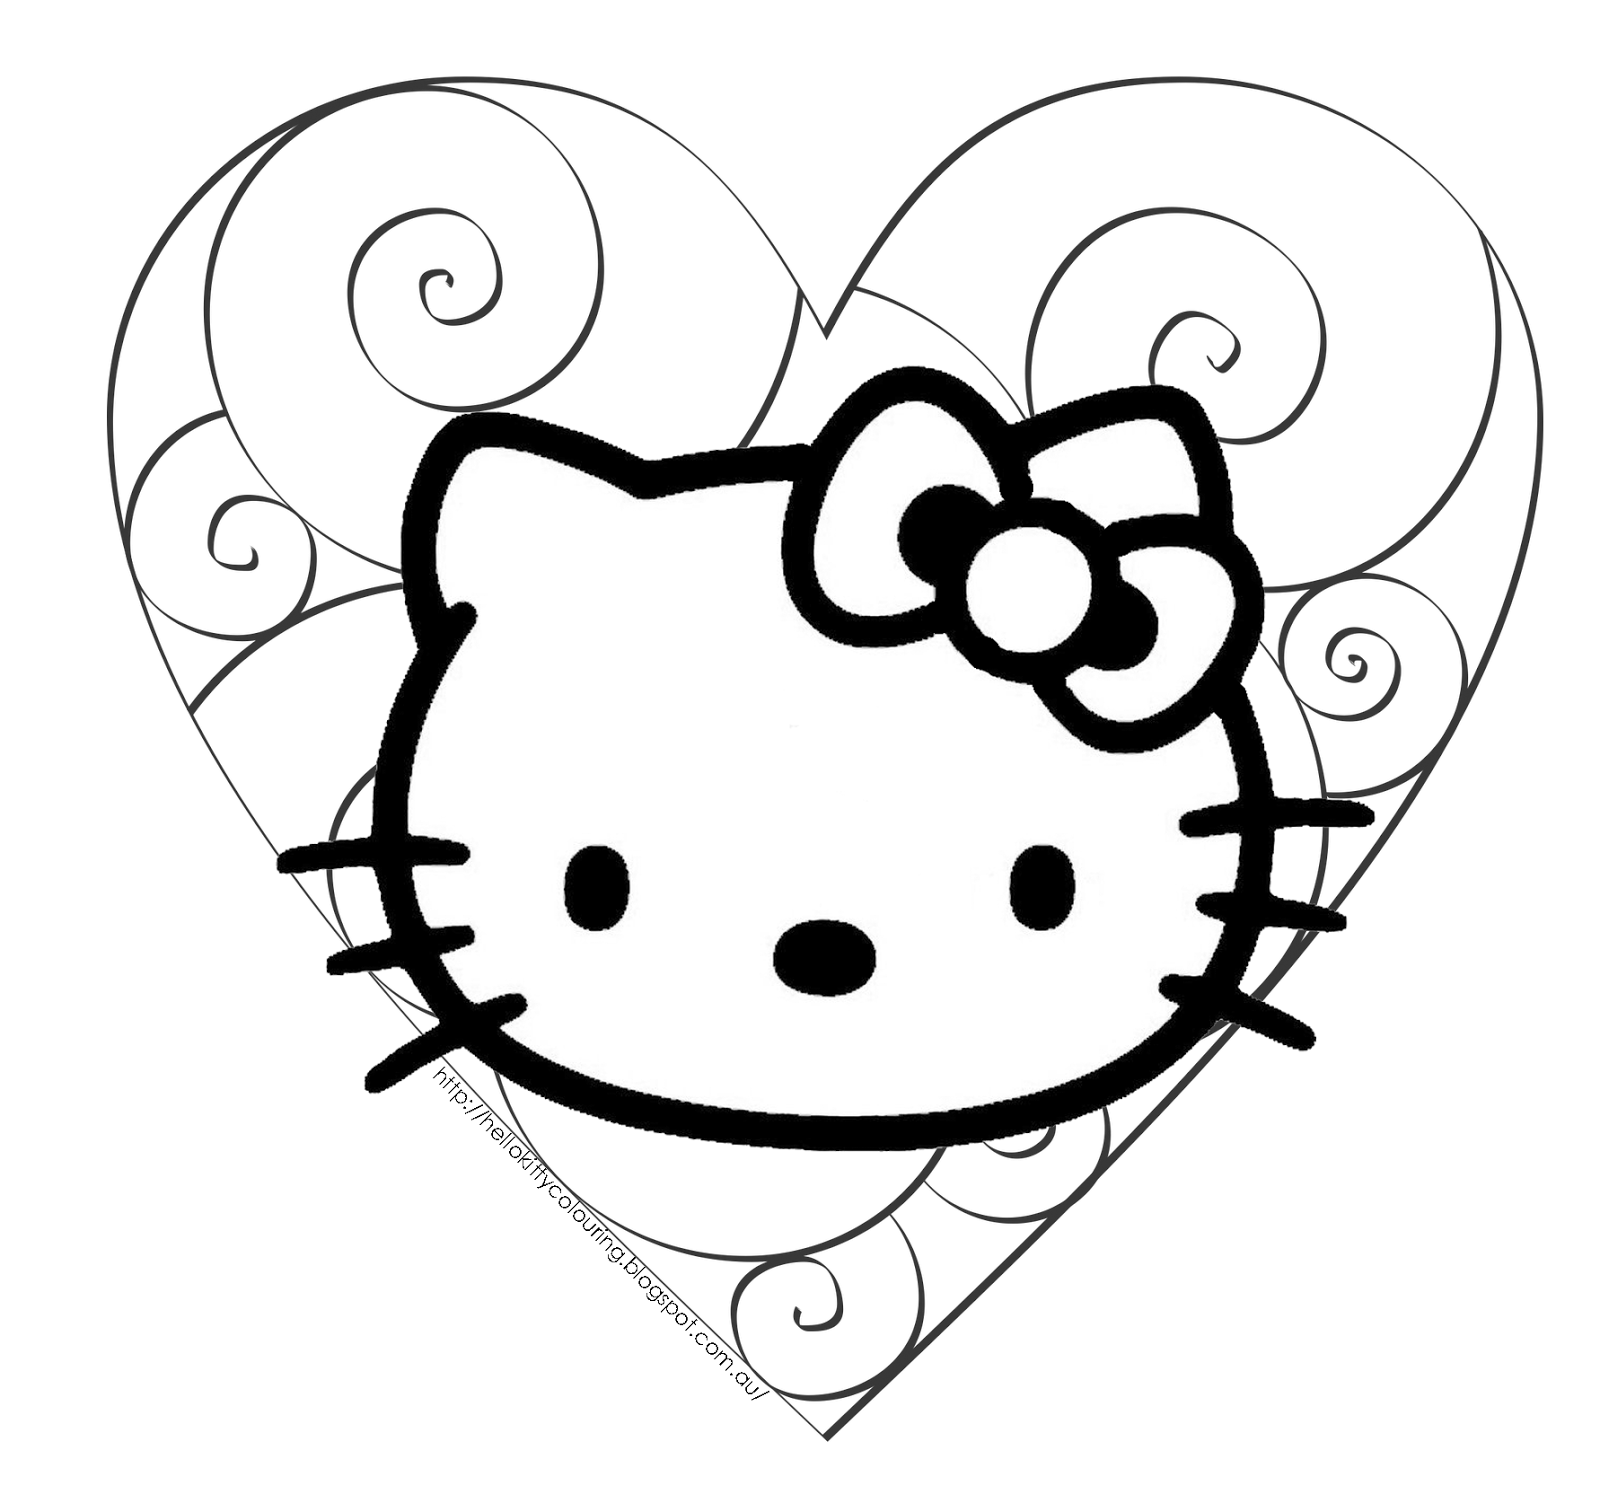 Download Share I Think My Favorite Coloring Page Here Is The One Of Hello Kitty